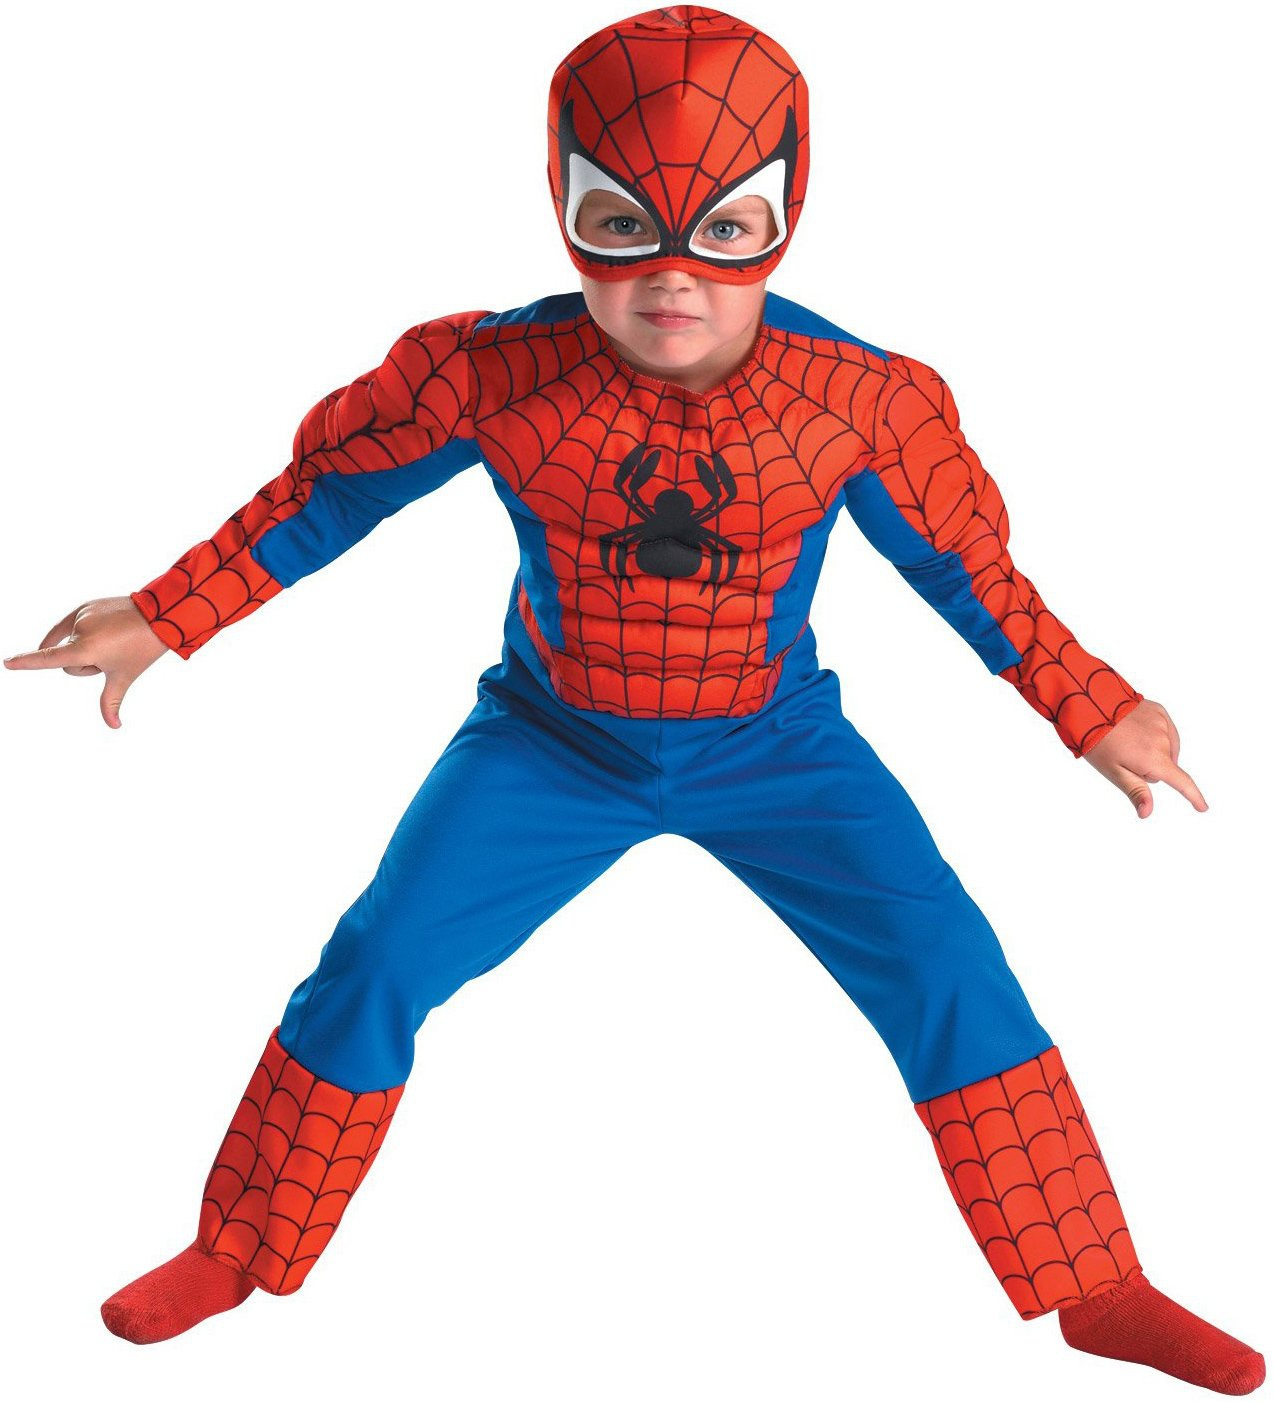 Spiderman Muscle Chest Toddler Costume Mr Costumes  sc 1 st  Meningrey & Spiderman Costume With Muscles - Meningrey